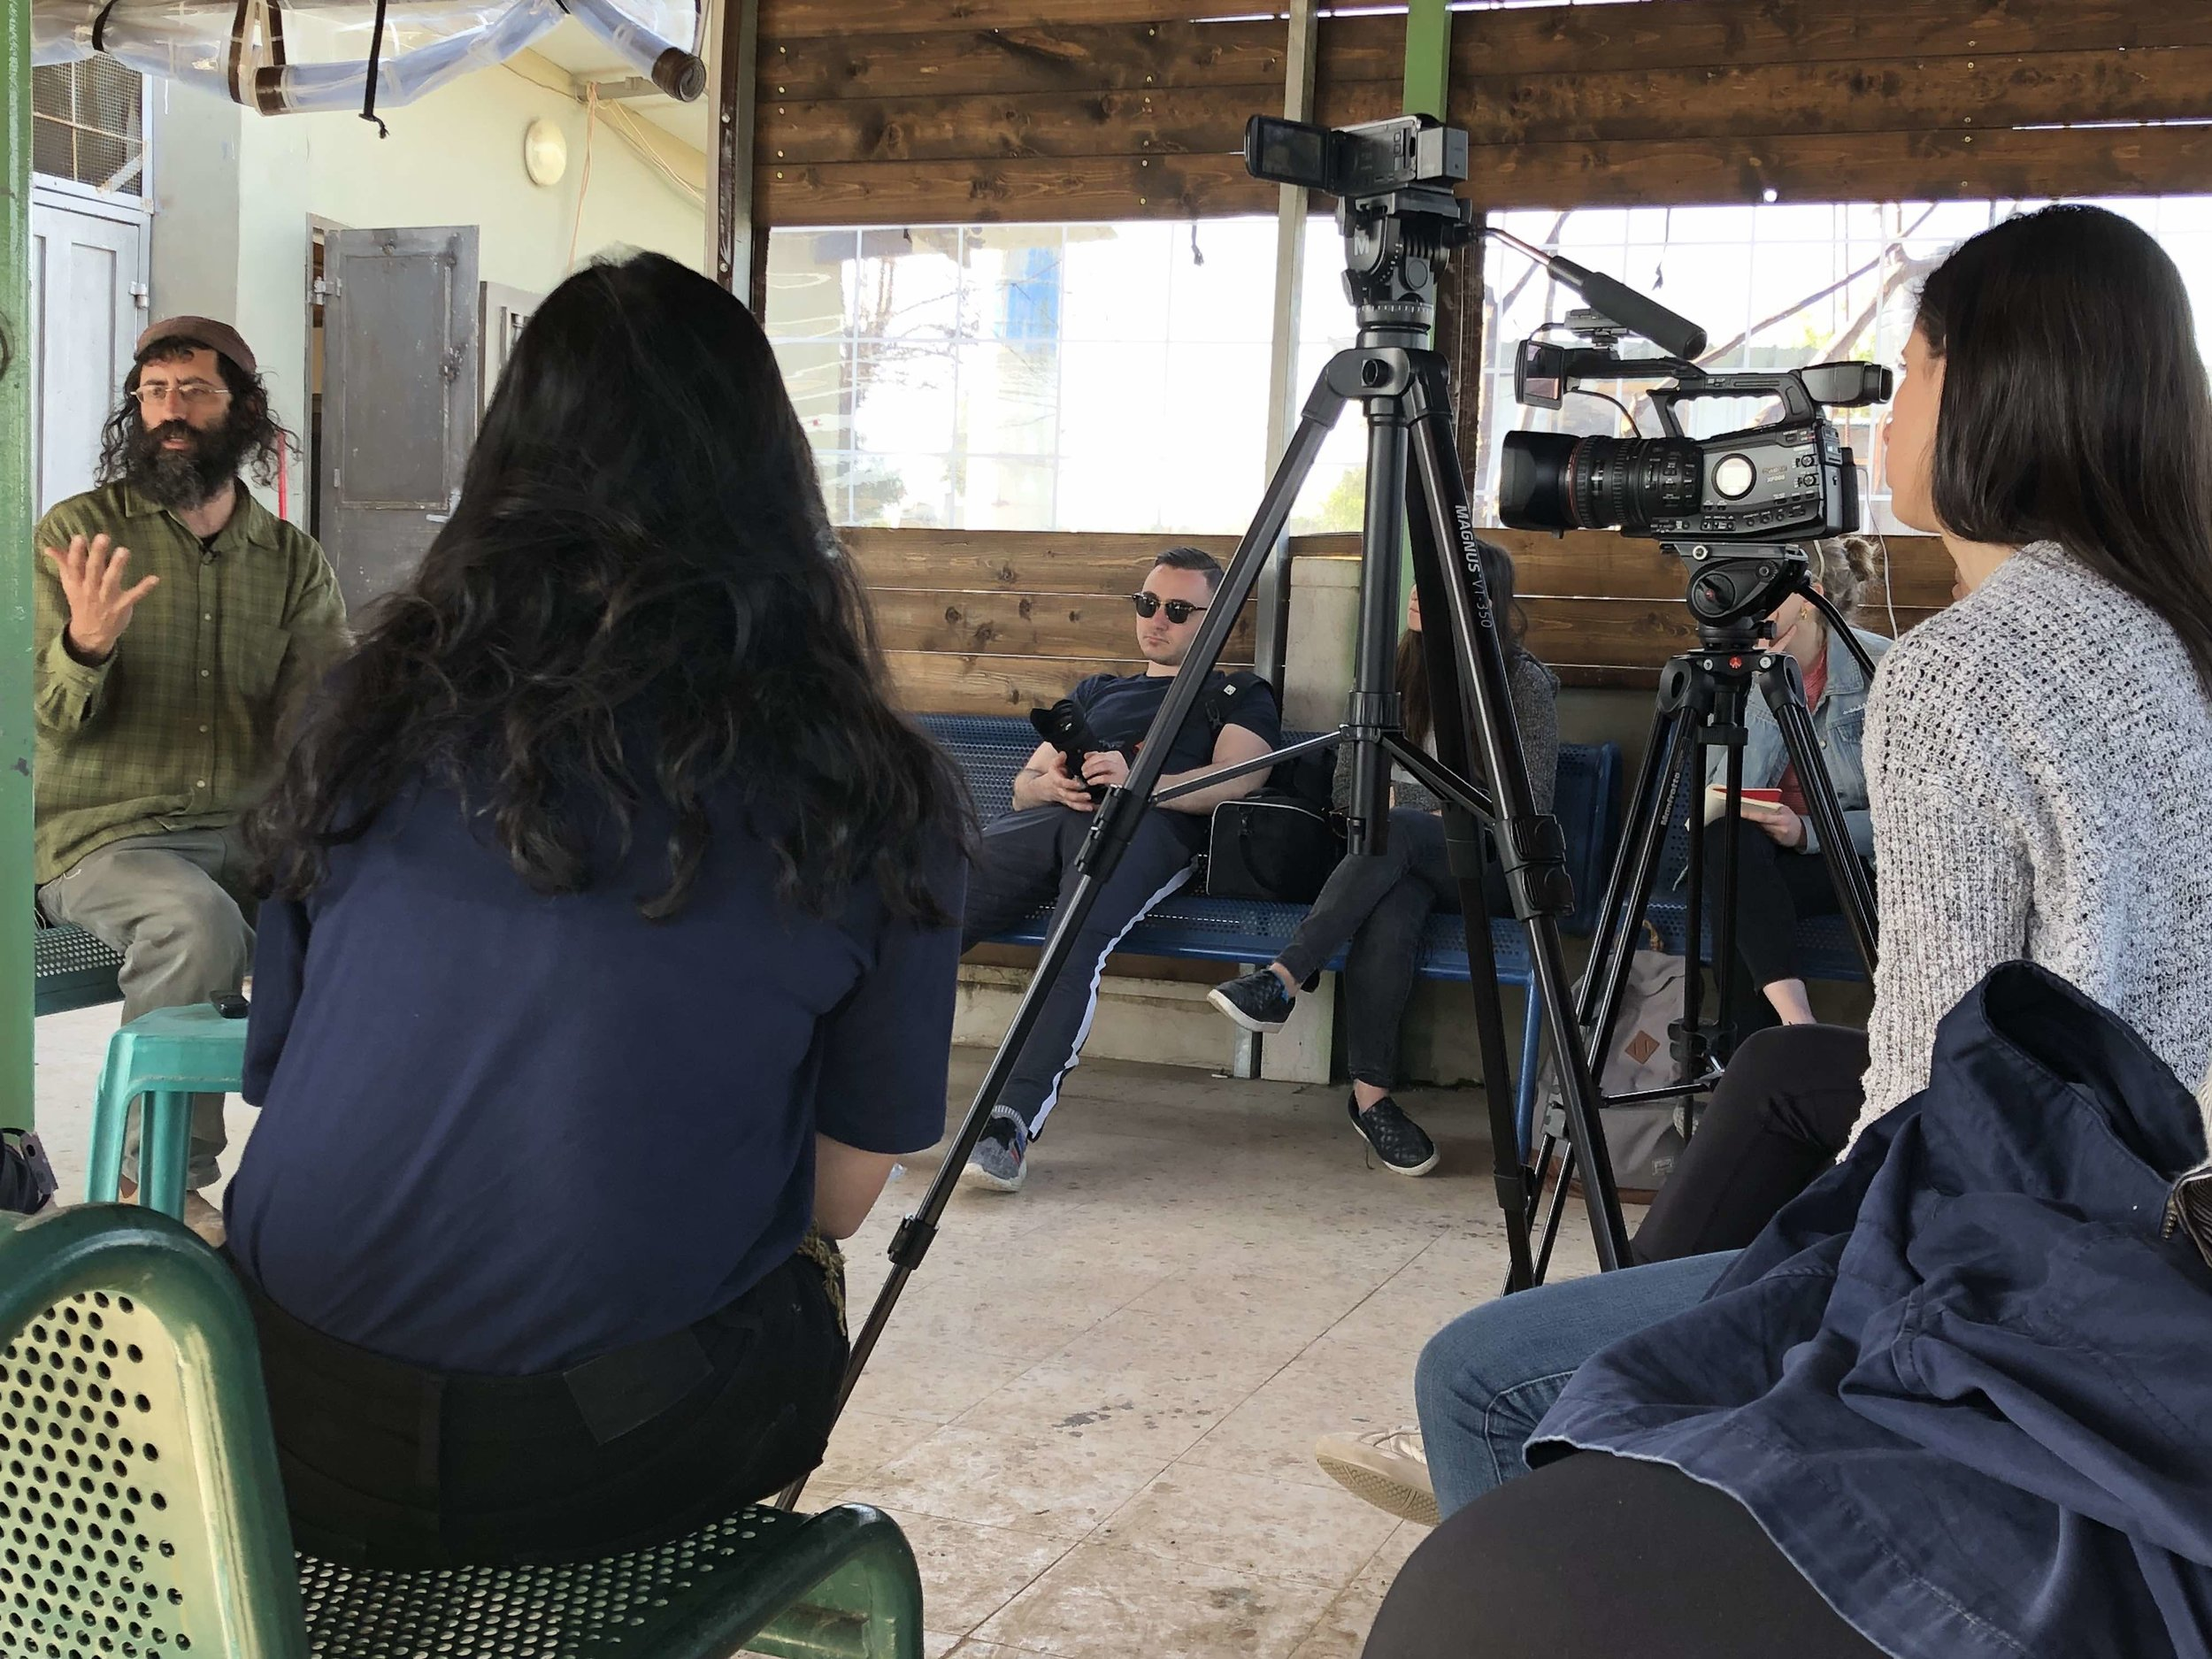 Newhouse students interview Shaul Judelman, left, at Roots, a group that promotes peace in Israel.